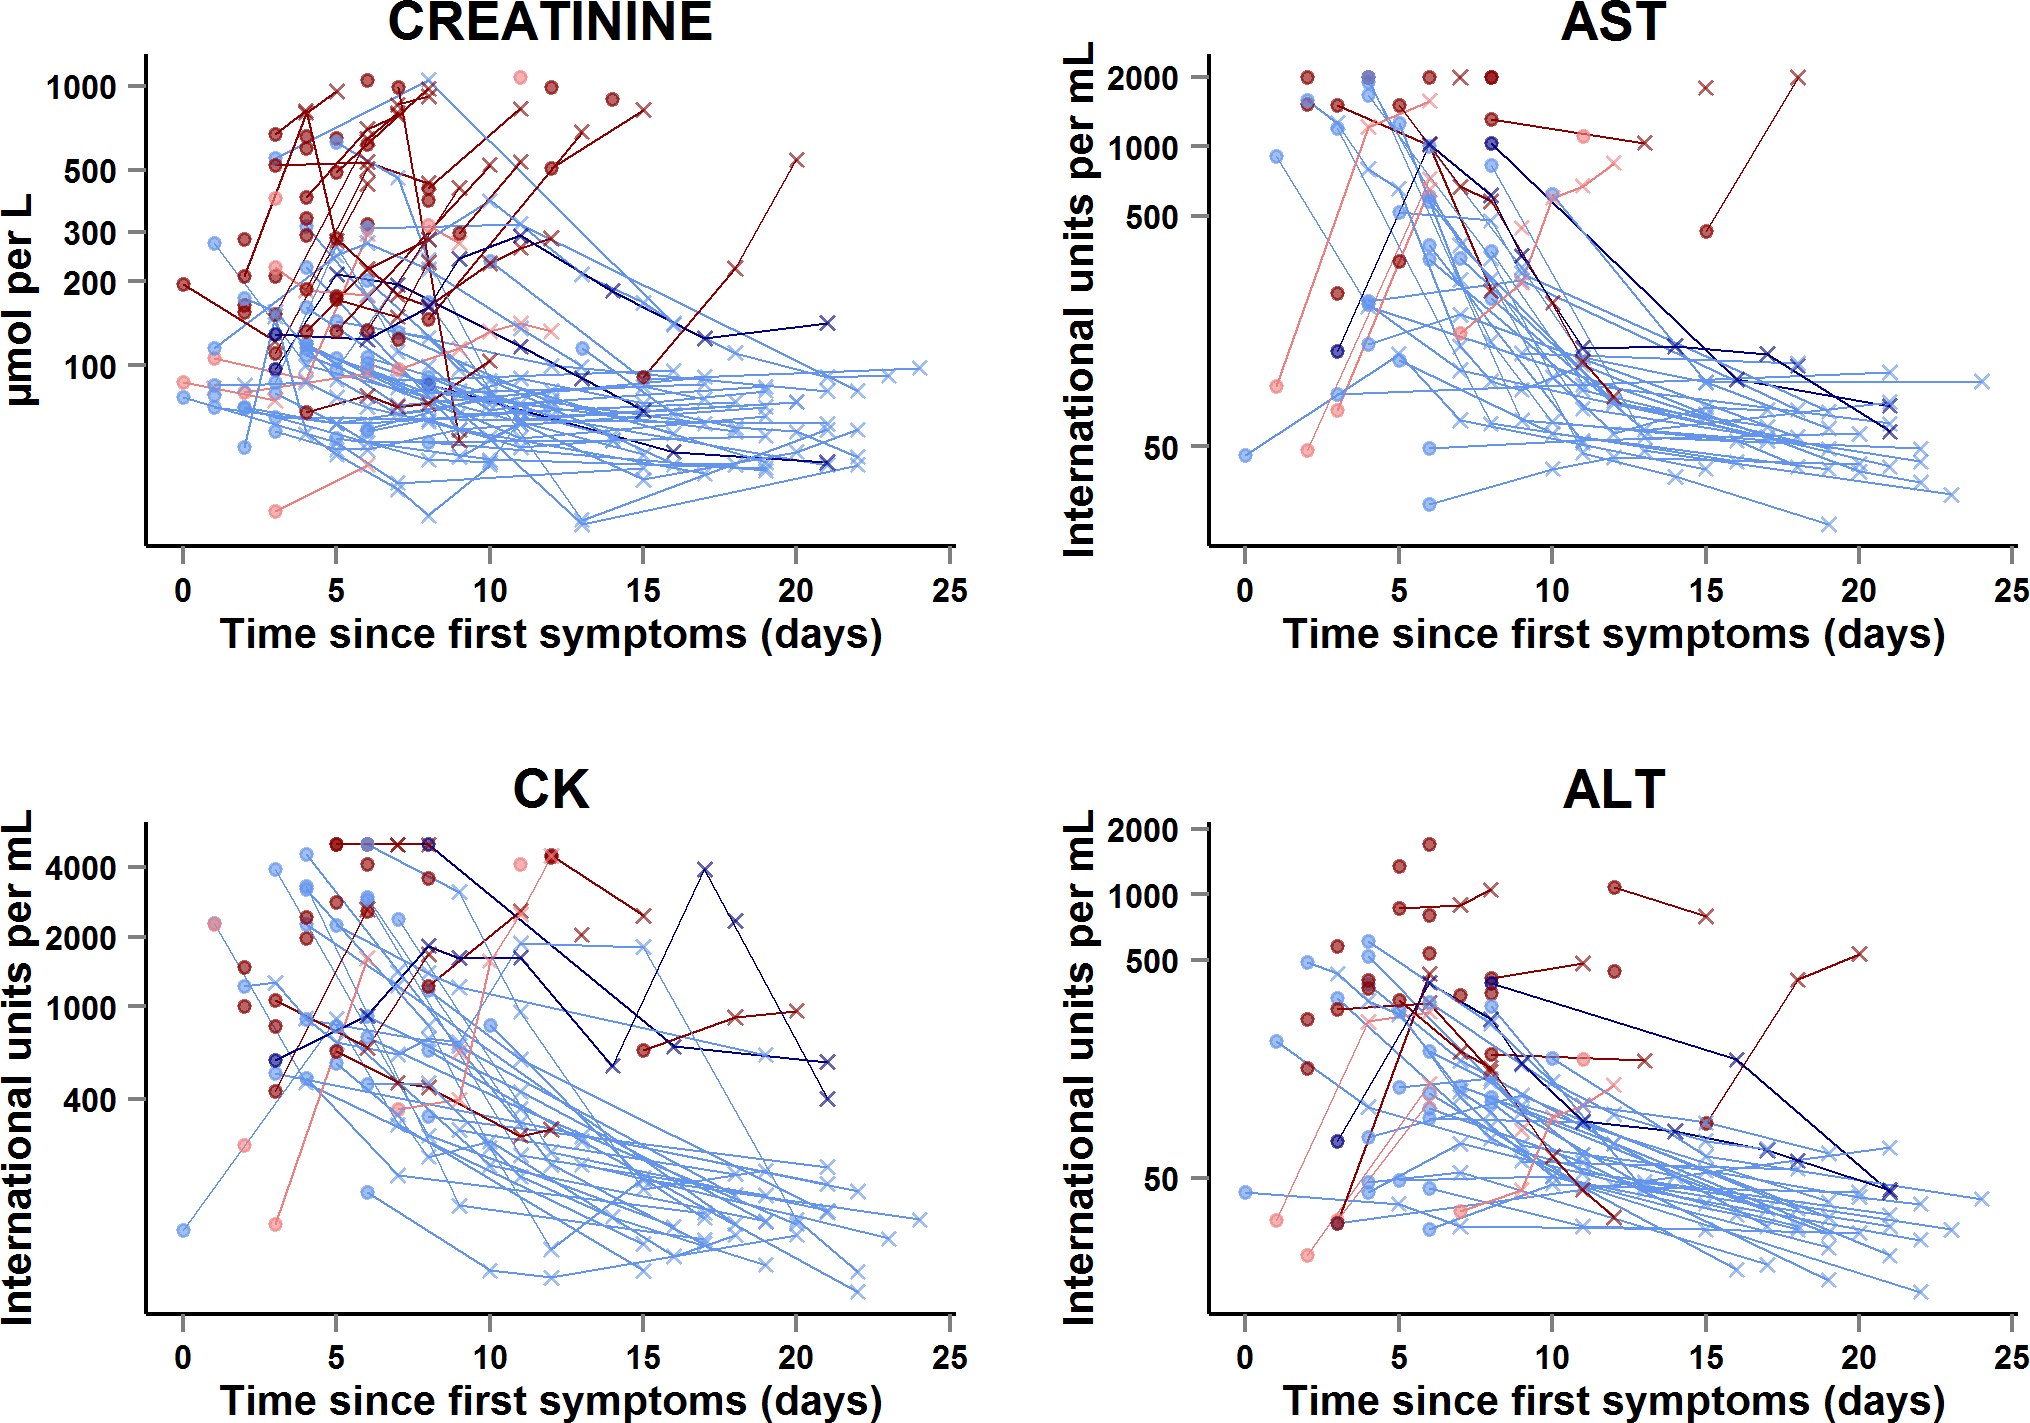 JIKI trial: evolution of serum creatinine, aspartate aminotransferase, alanine aminotransferase, and creatine phosphokinase in adolescents and adults.